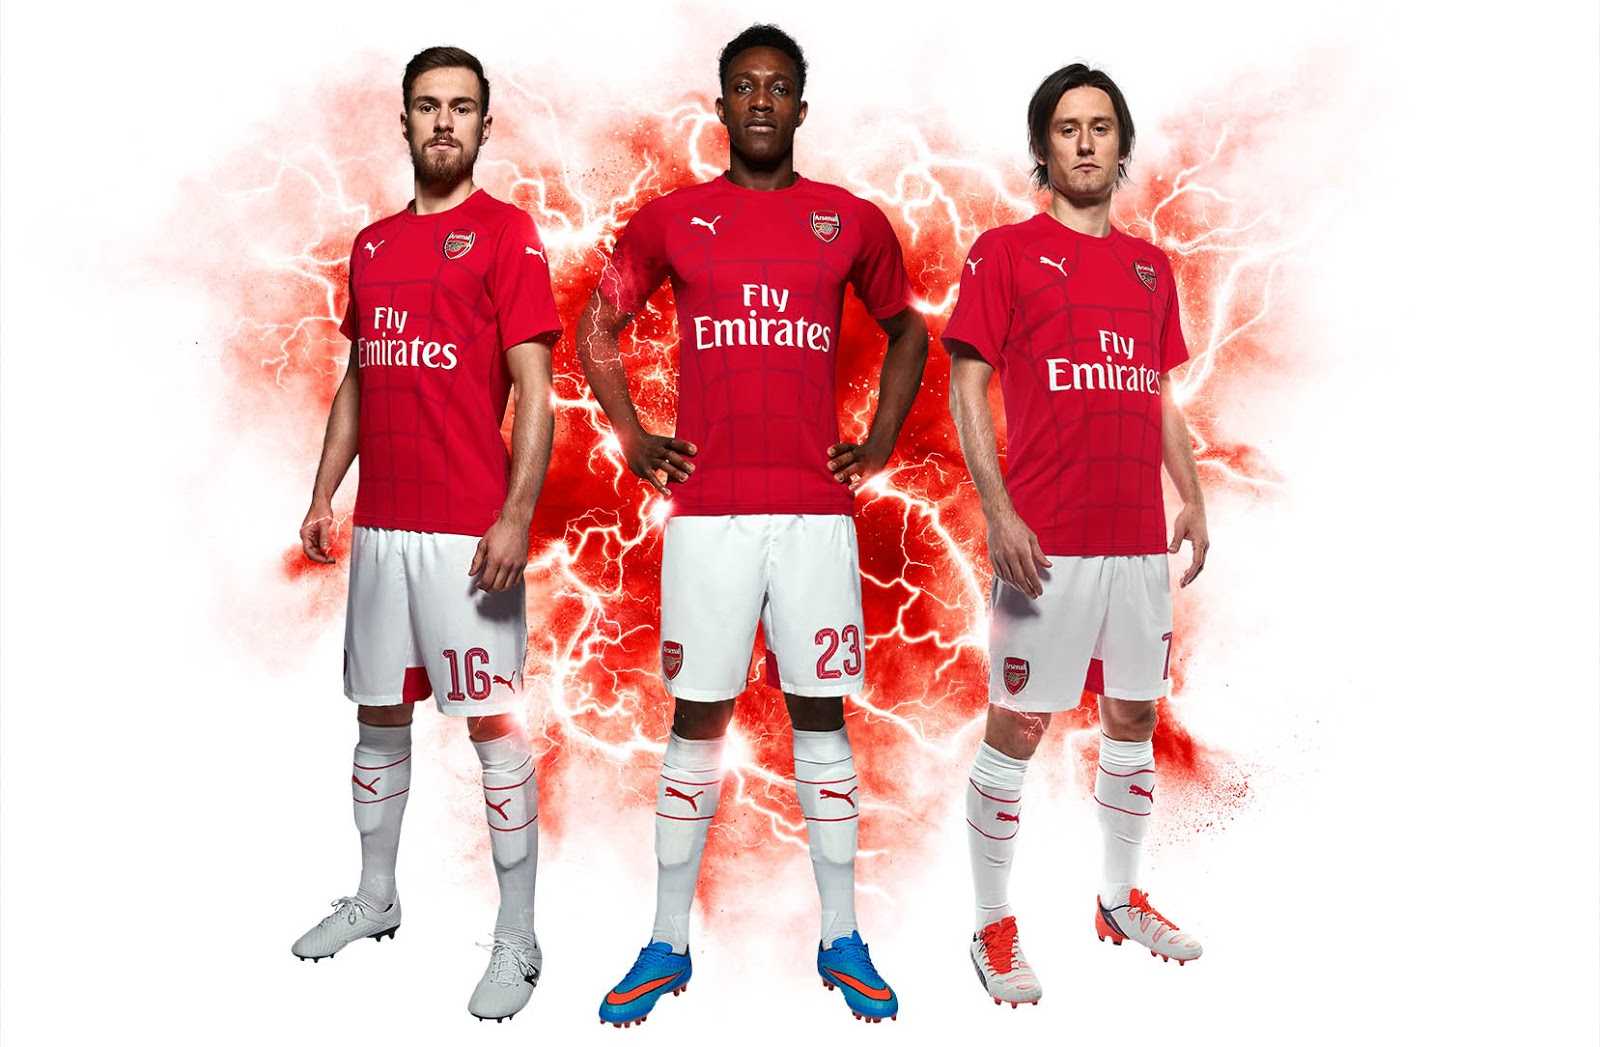 Arsenal Lima Enam Pre Match Shirt Released Footy Headlines